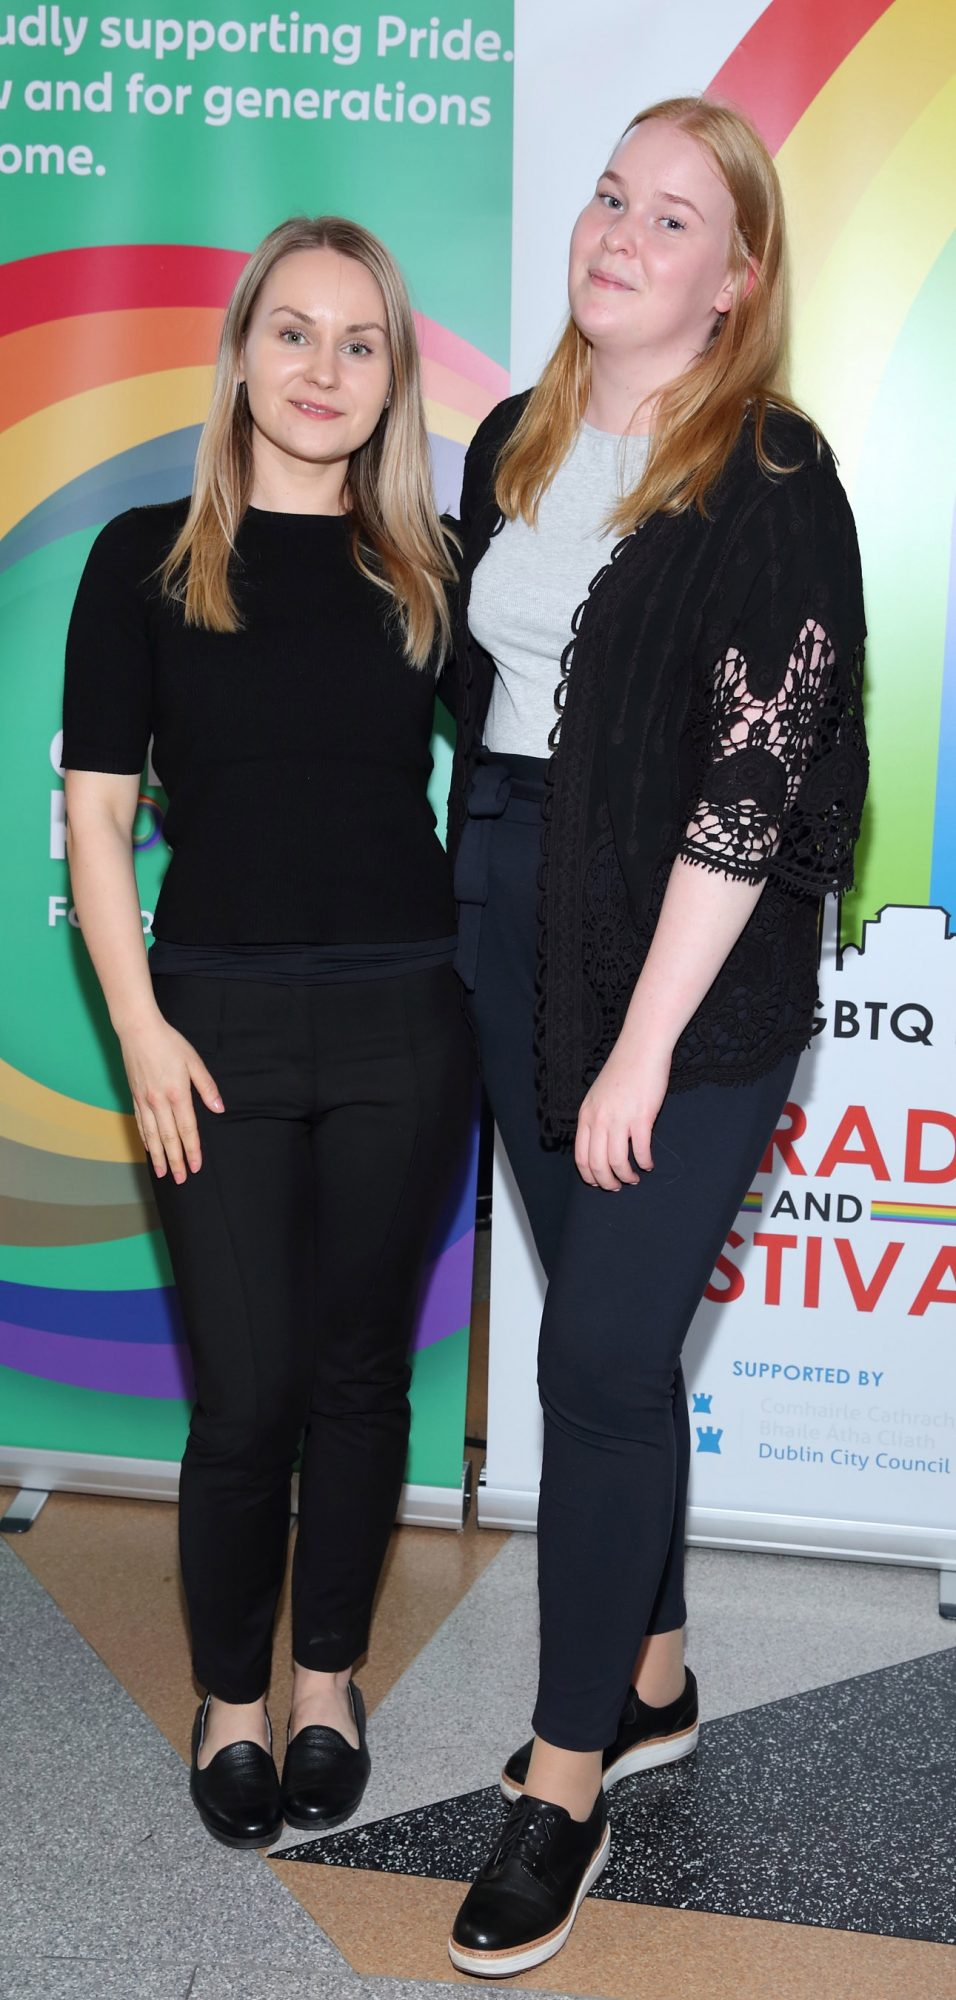 Marika Luostarven and Lina Jokinen pictured at the launch of the Dublin LGBTQ+ Pride Festival 2019 in partnership with platinum sponsor Tesco at the GPO, Dublin. Picture: Brian McEvoy Photography